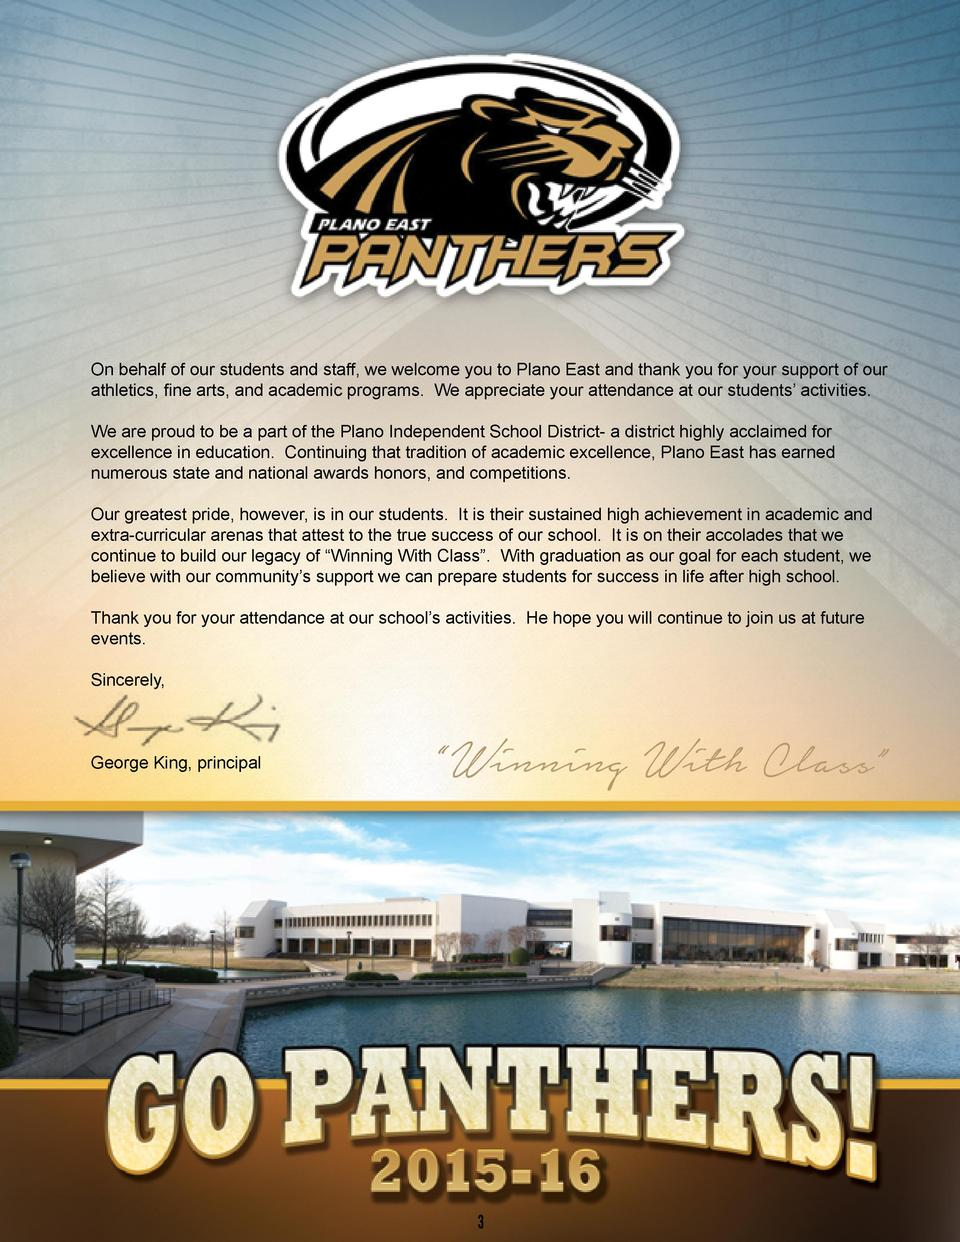 On behalf of our students and staff, we welcome you to Plano East and thank you for your support of our athletics, fine ar...